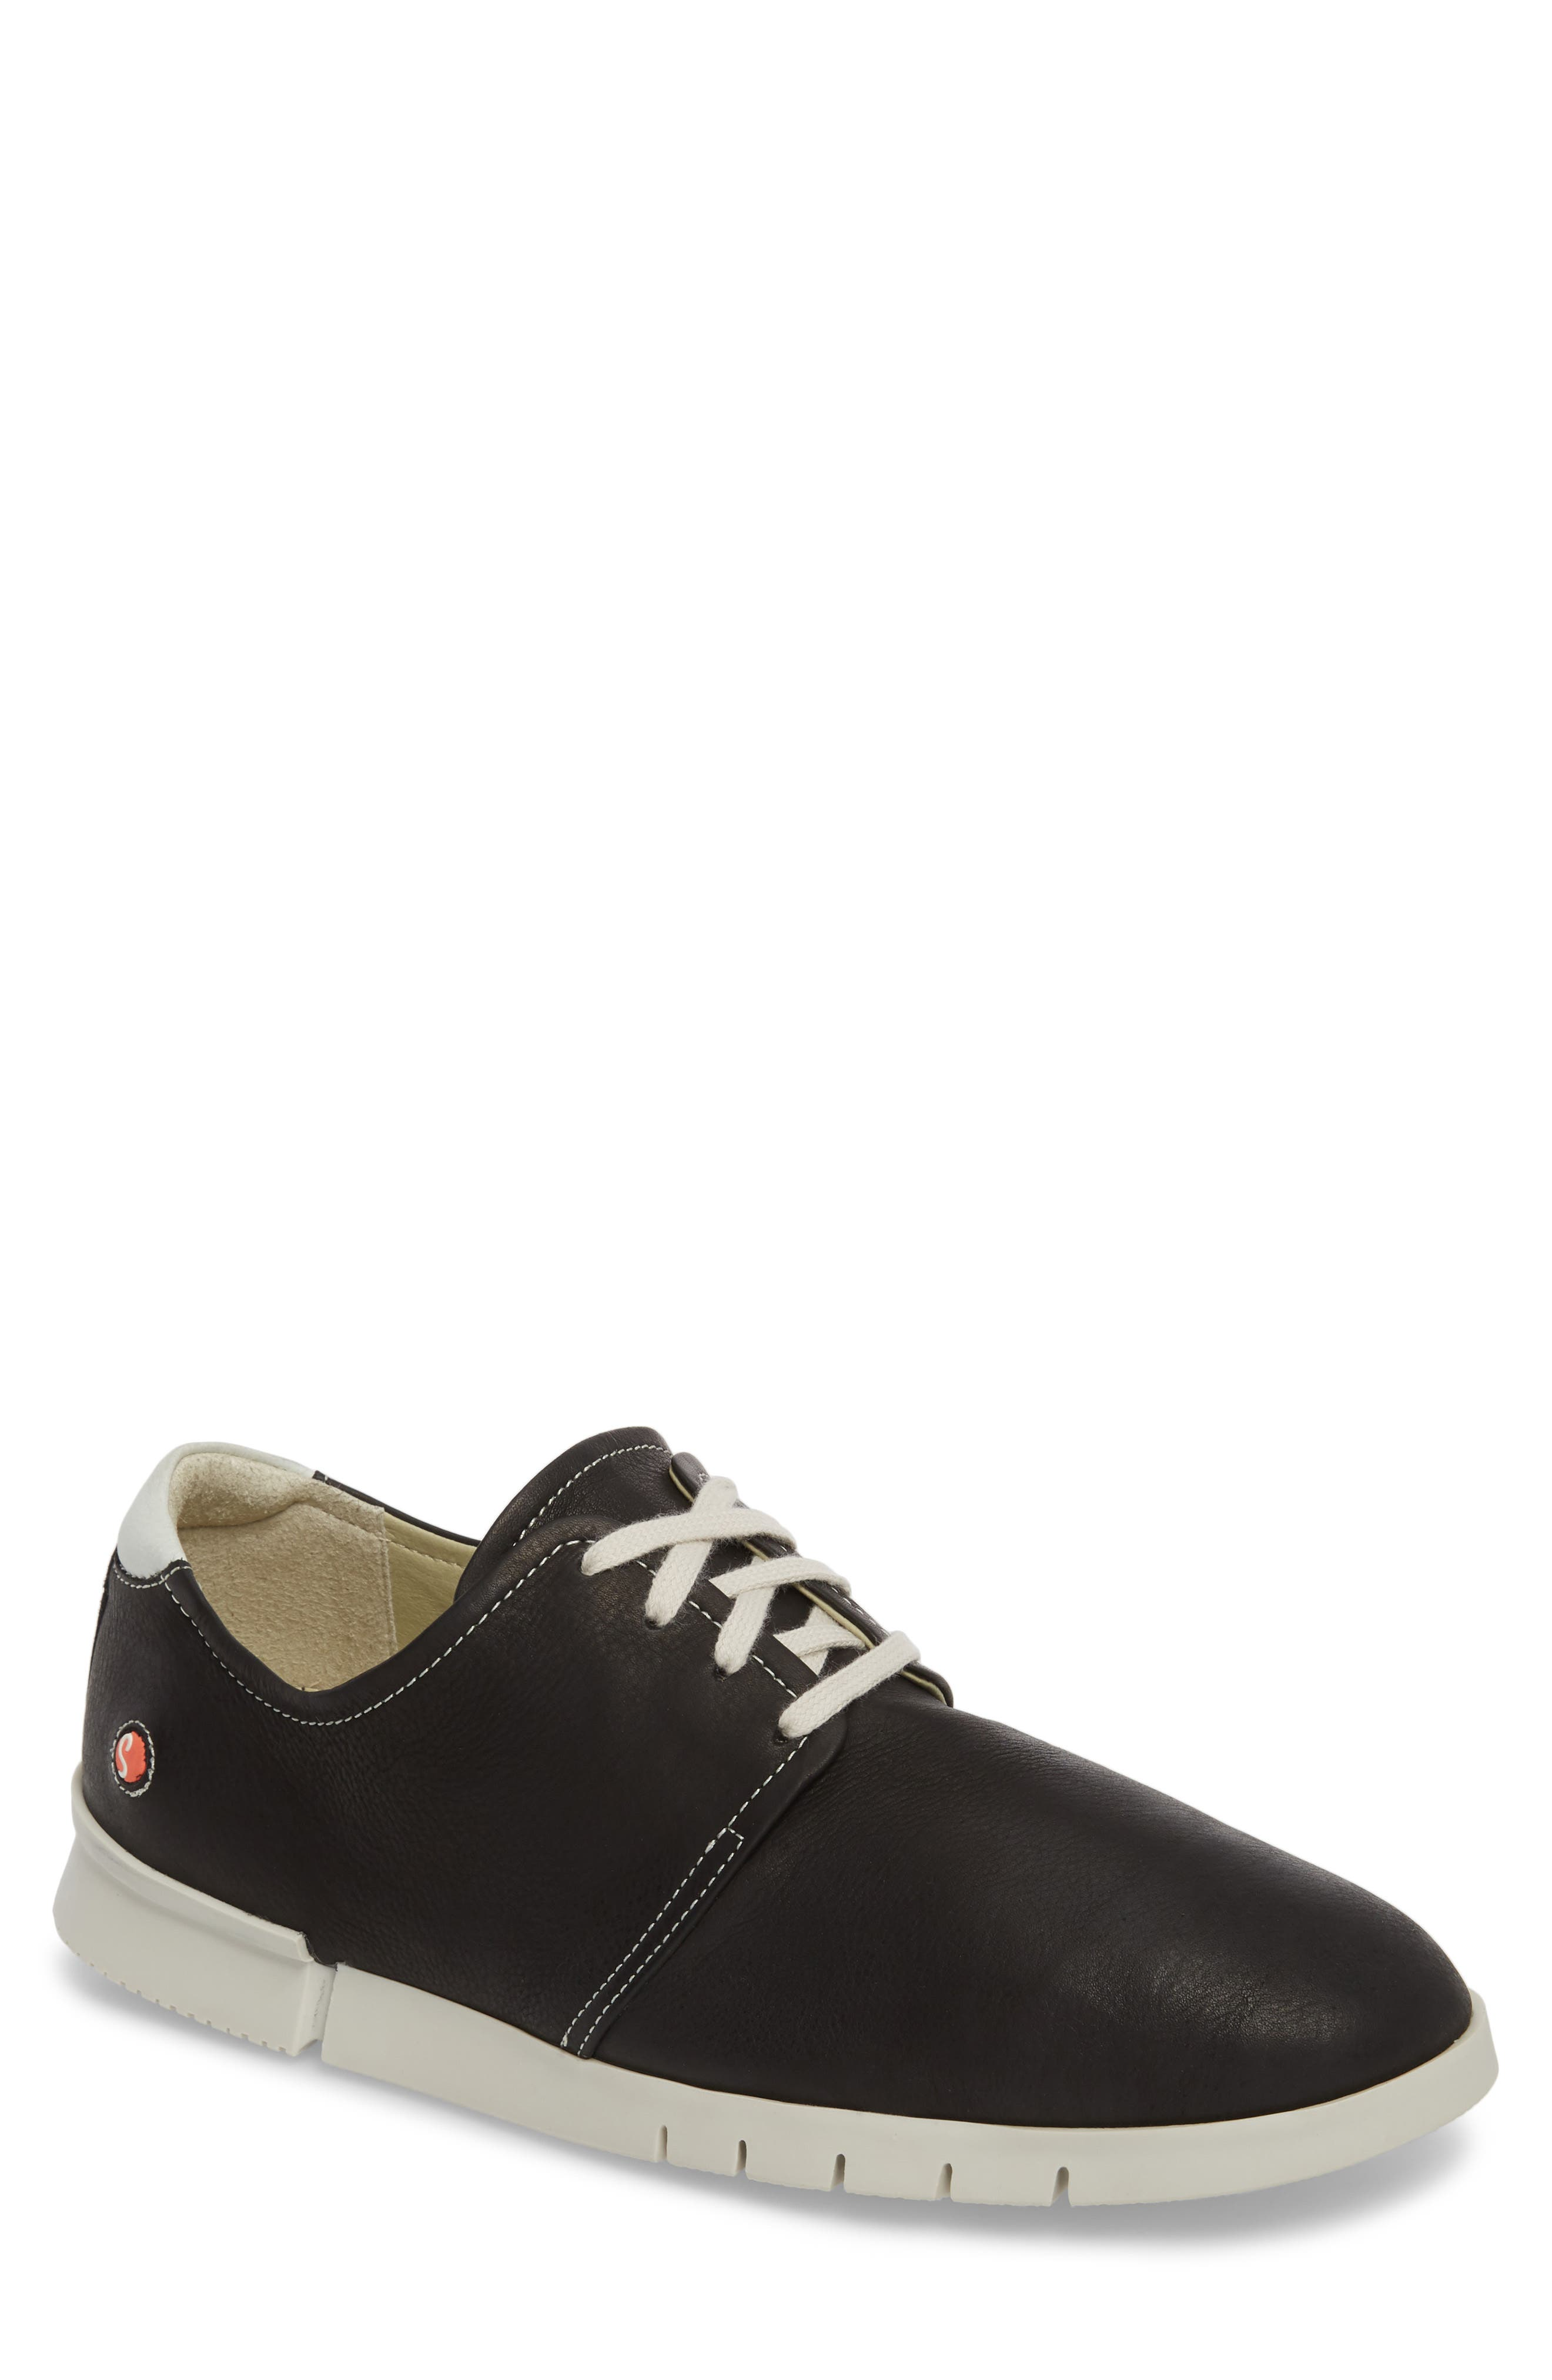 Alternate Image 1 Selected - Softinos by Fly London Cap Low Top Sneaker (Men)